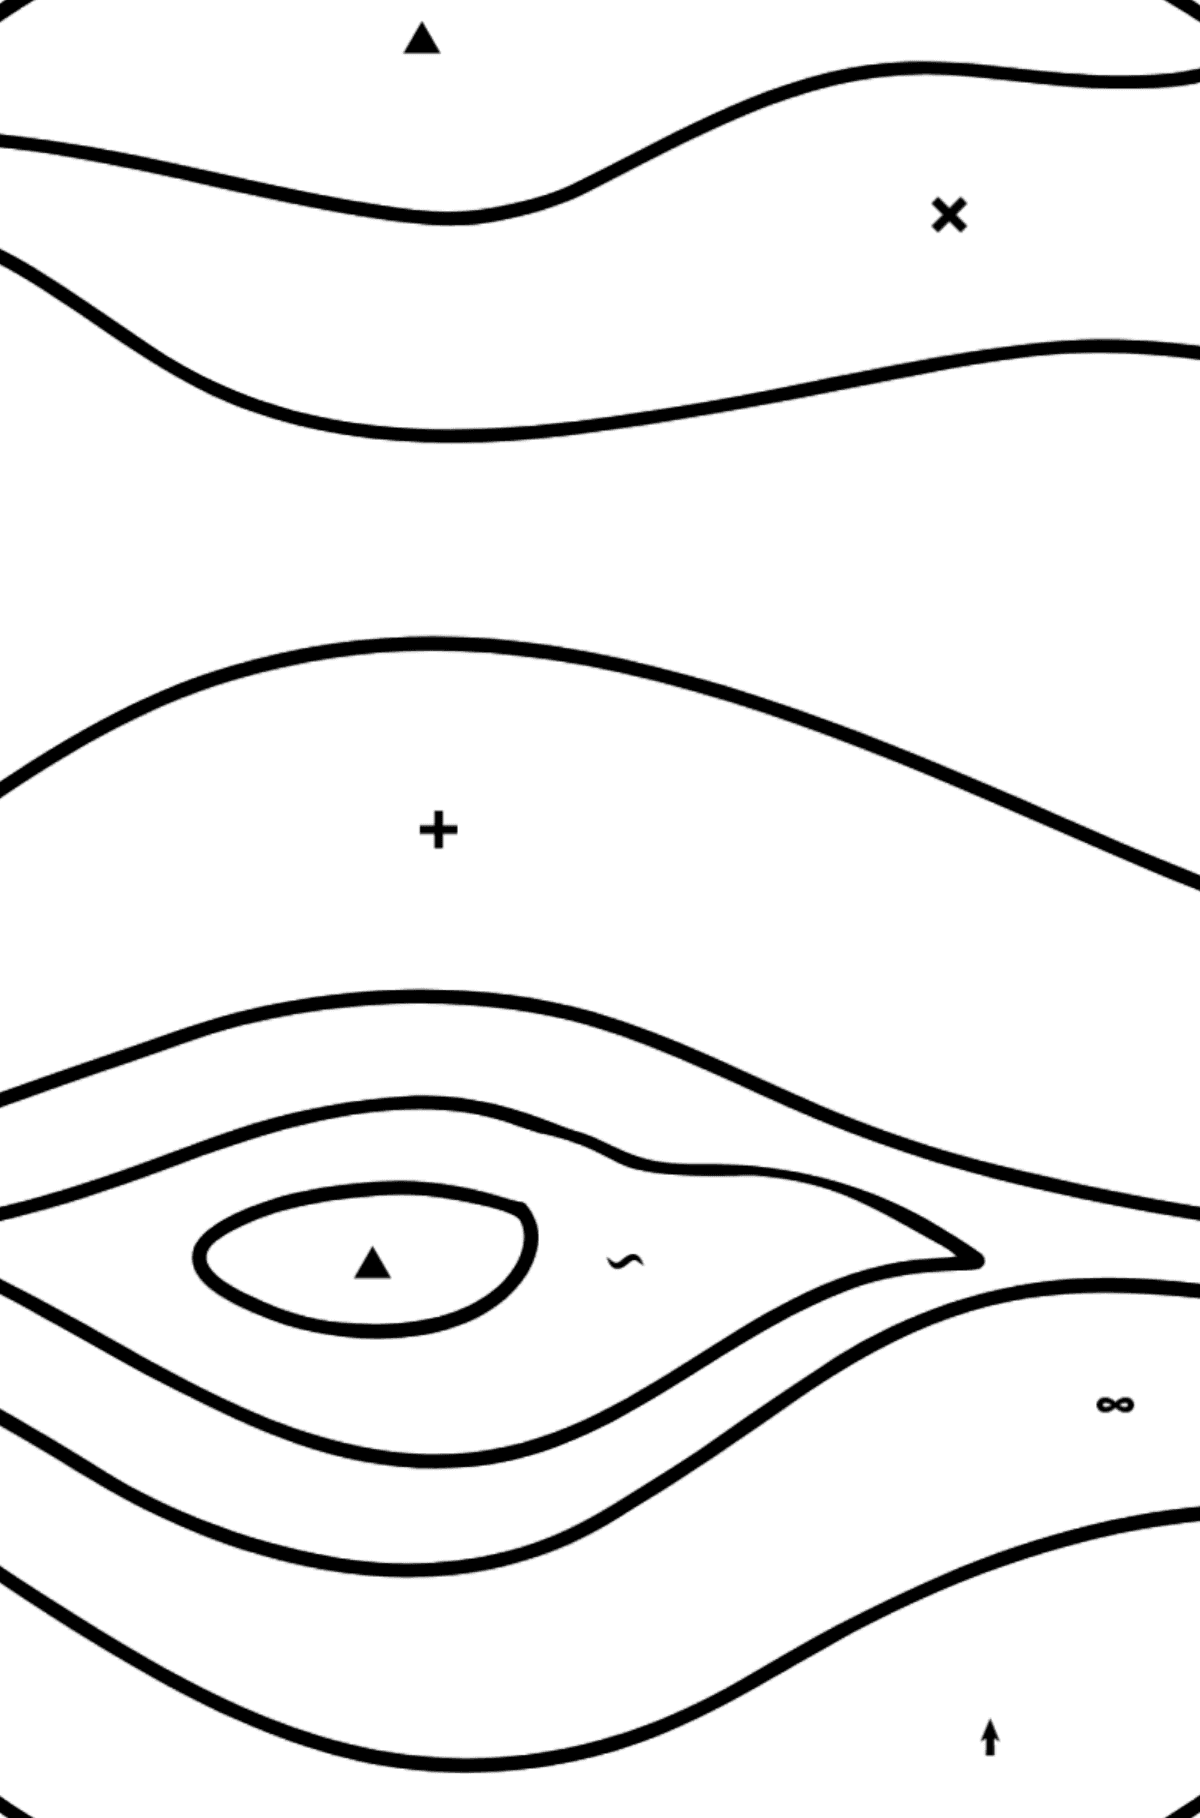 Jupiter coloring page - Coloring by Symbols for Kids